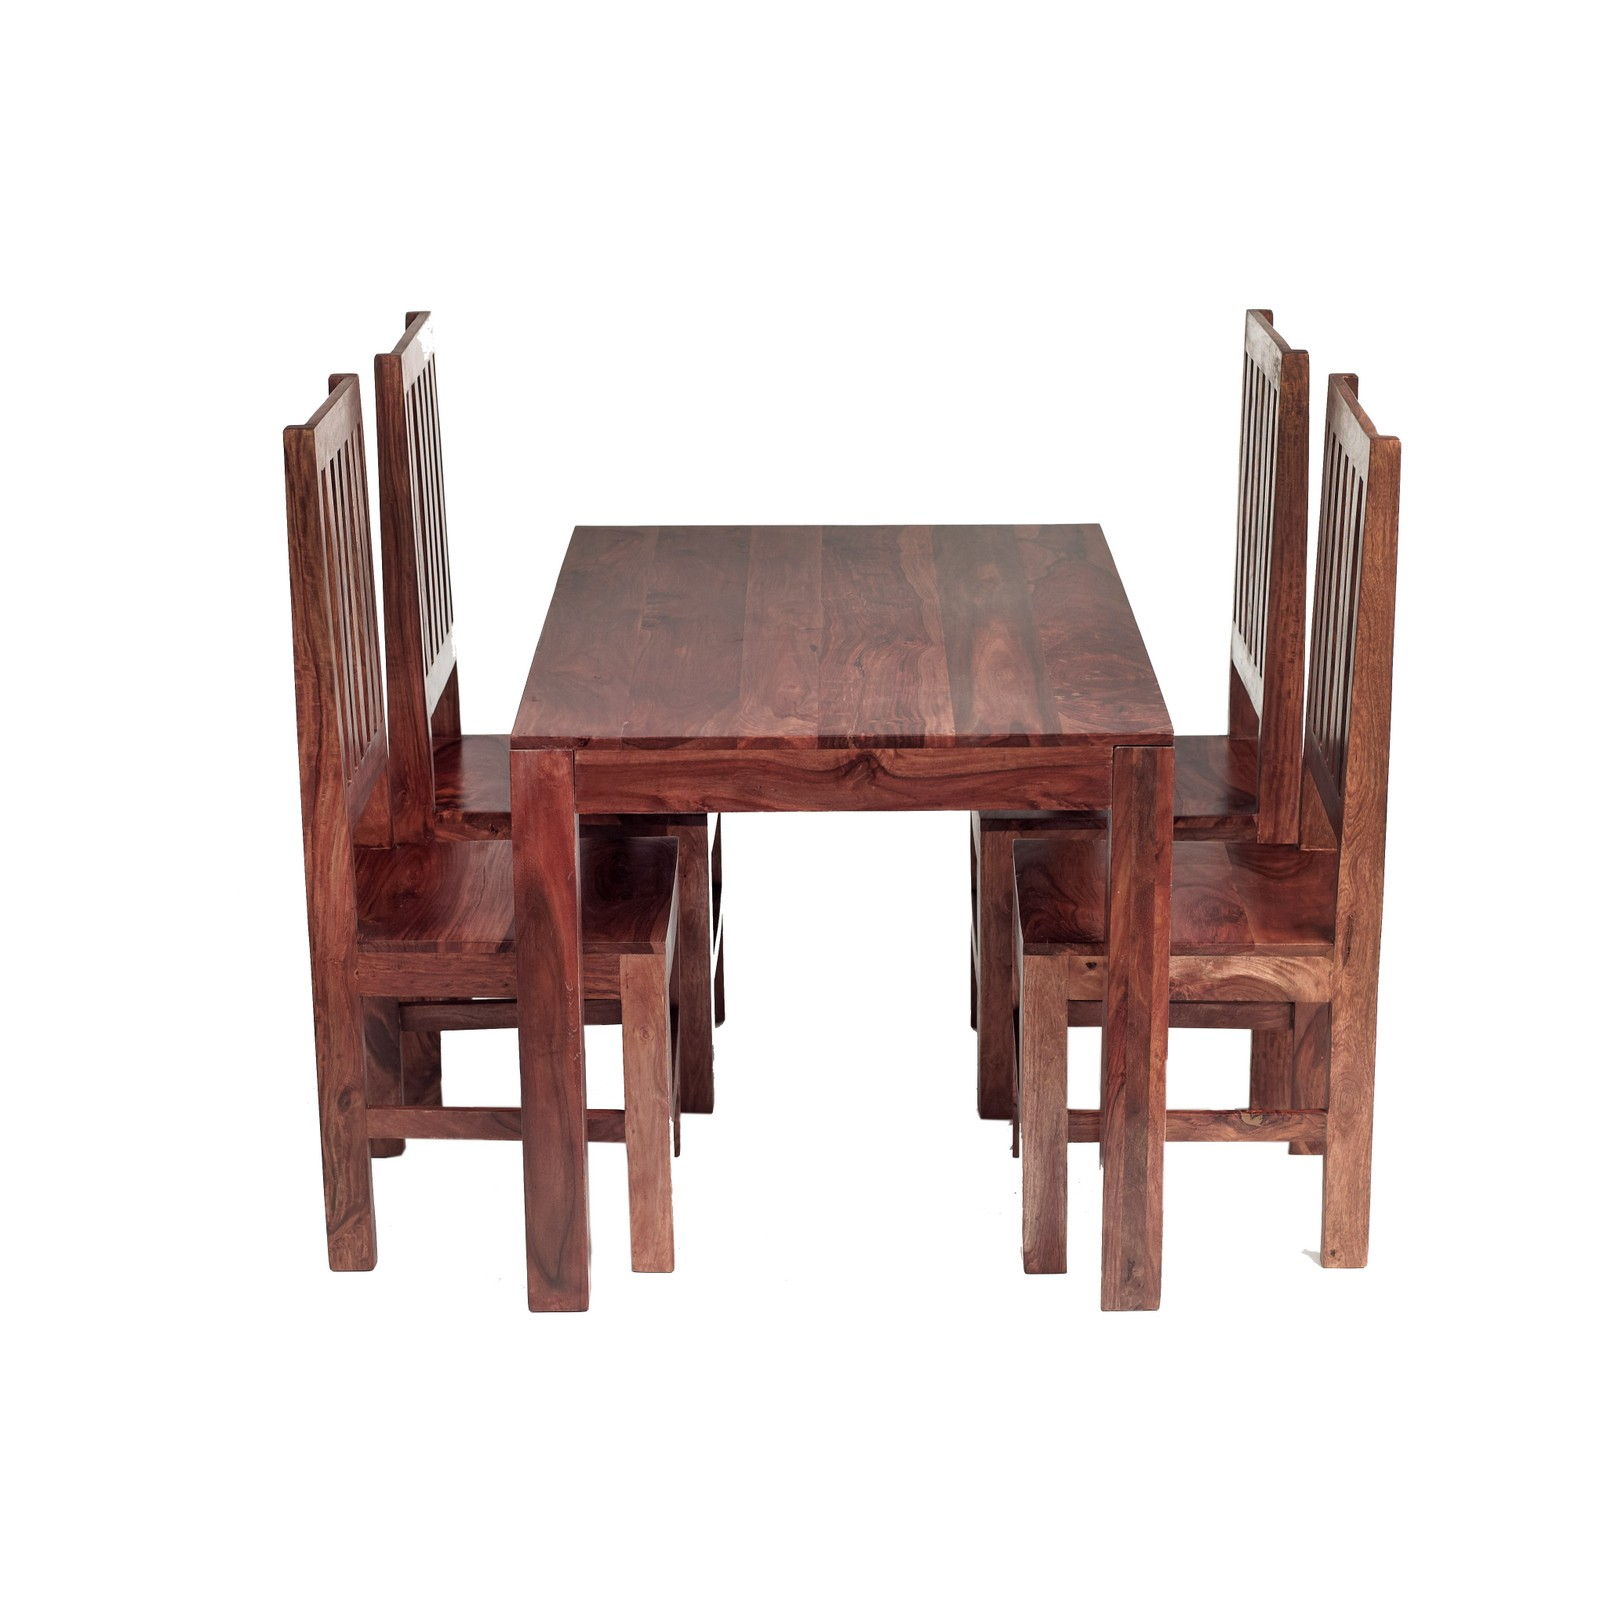 Cube Sheesham 4 Ft Dining Set with Wooden Chairs Verty  : D05 from vertyfurniture.co.uk size 1600 x 1600 jpeg 203kB